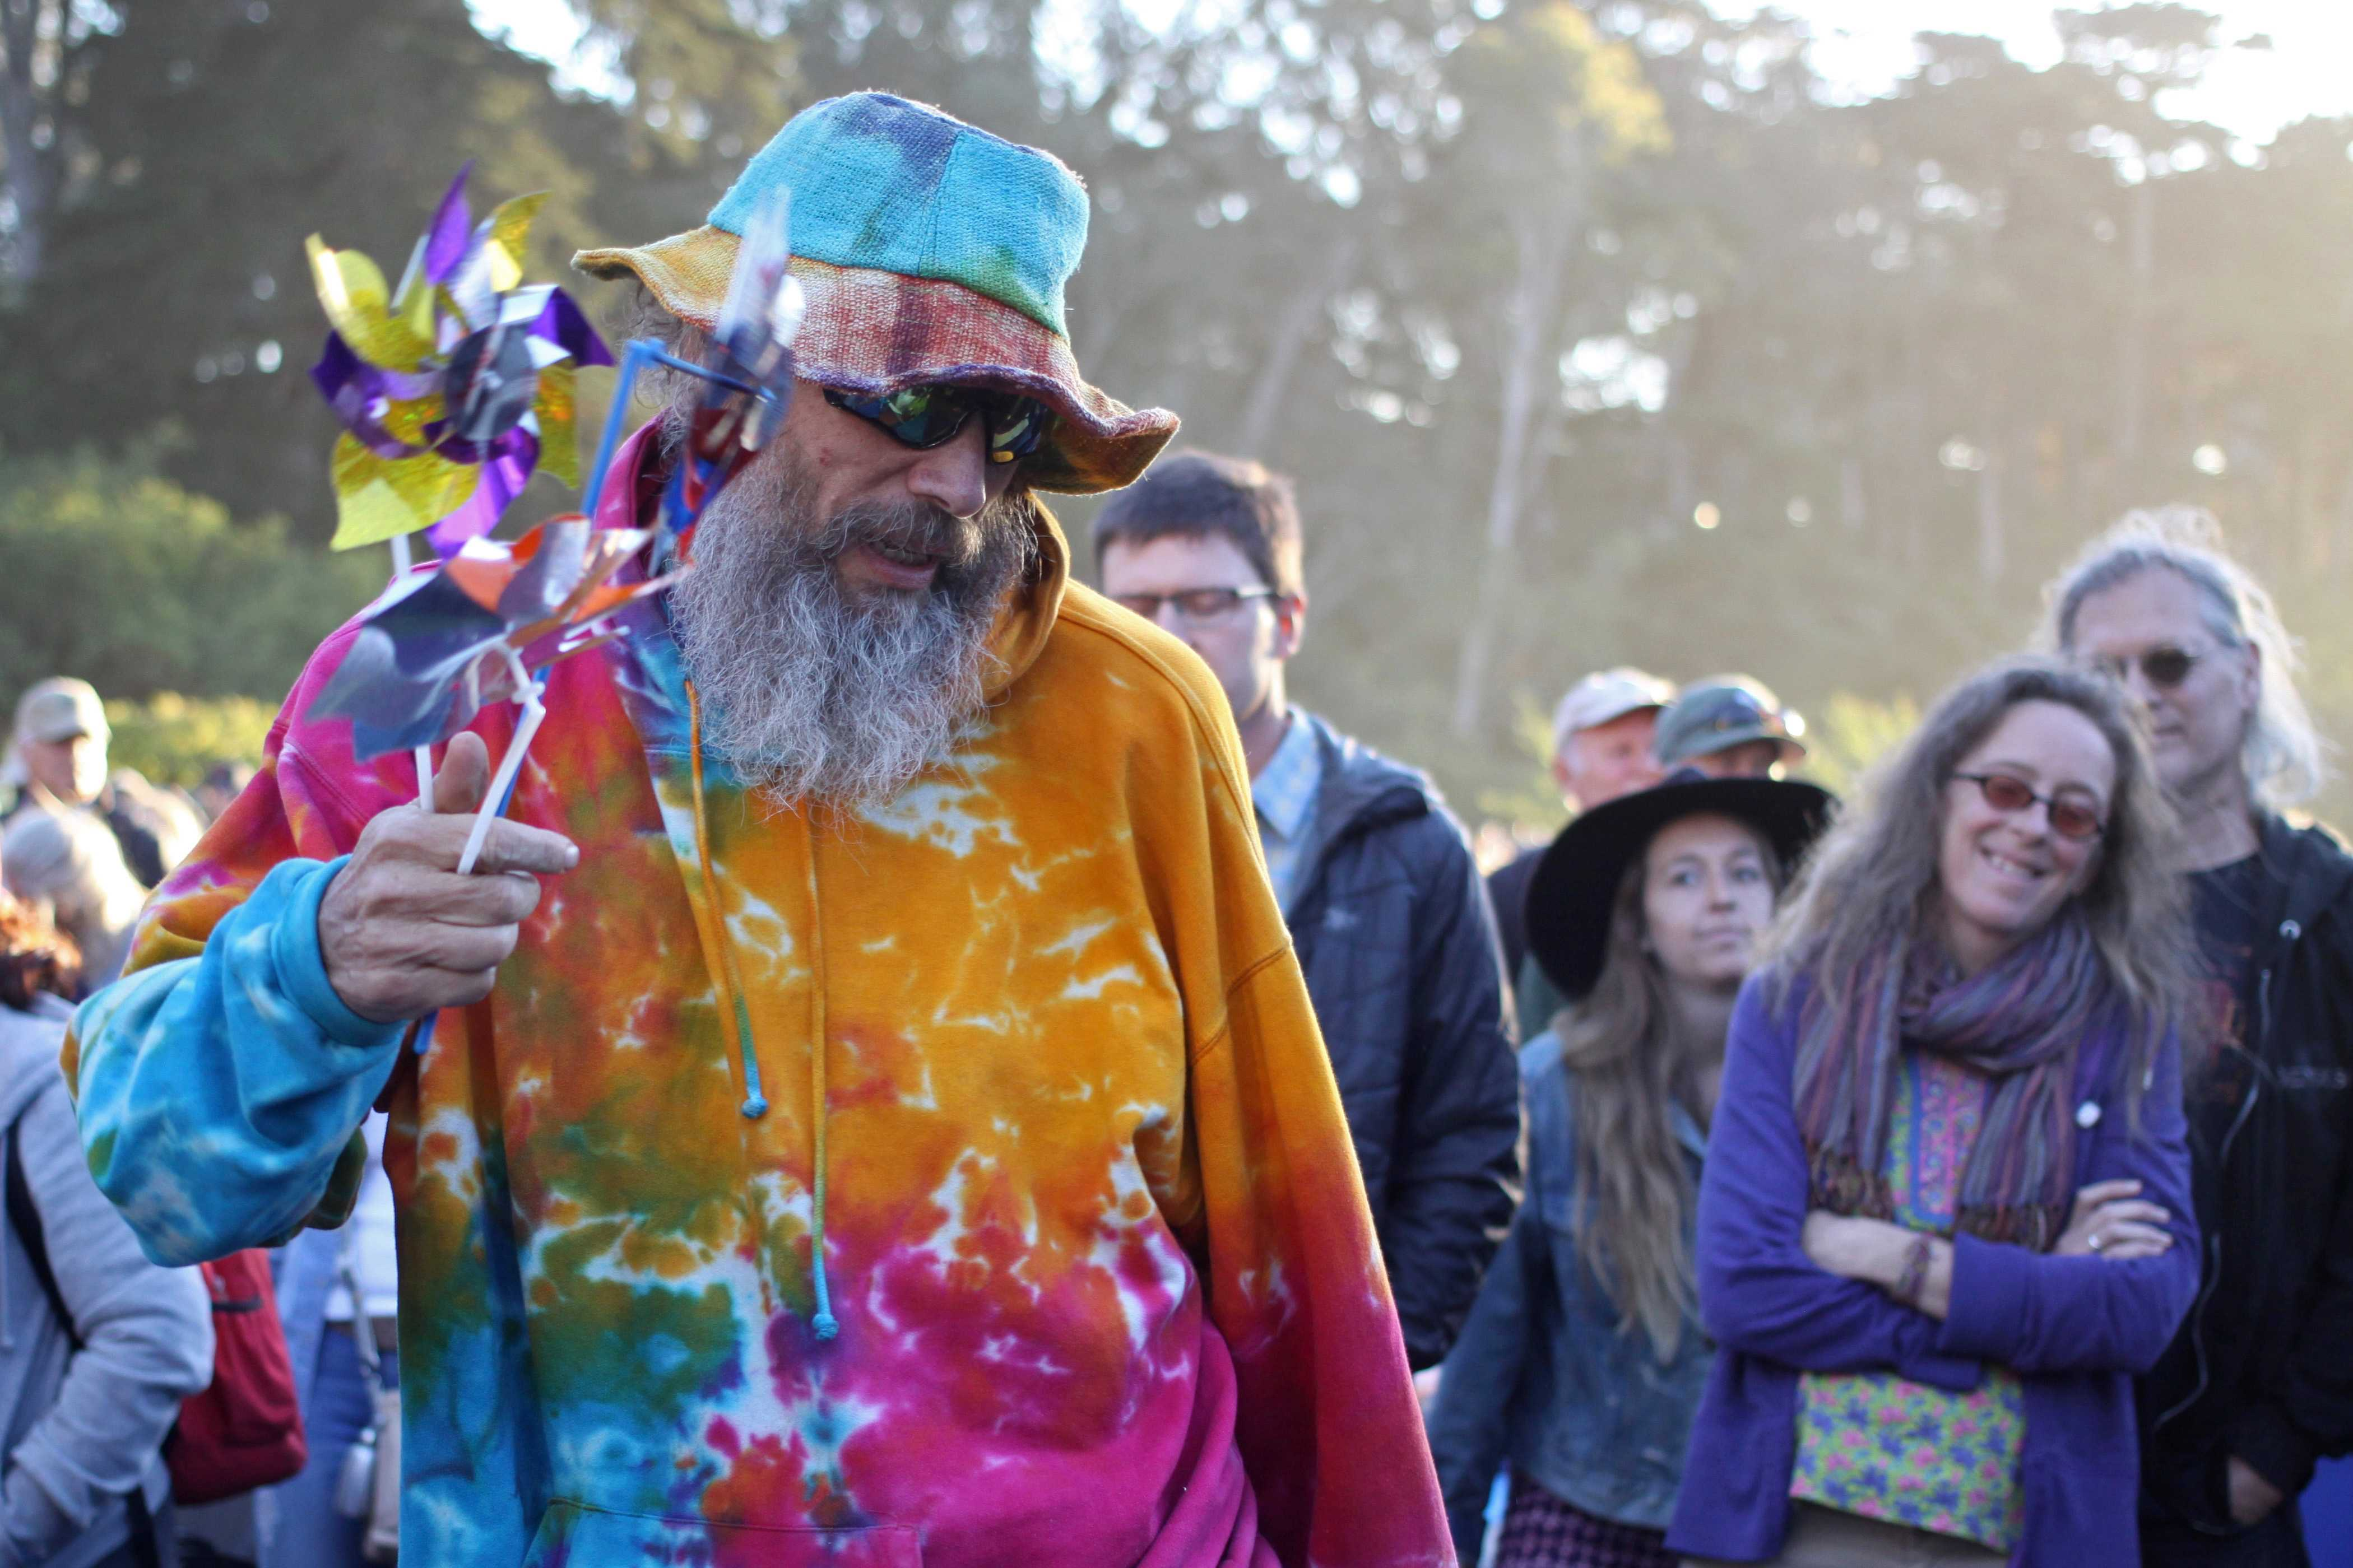 Hardly Strictly Bluegrass Festival brings crowds of all ages